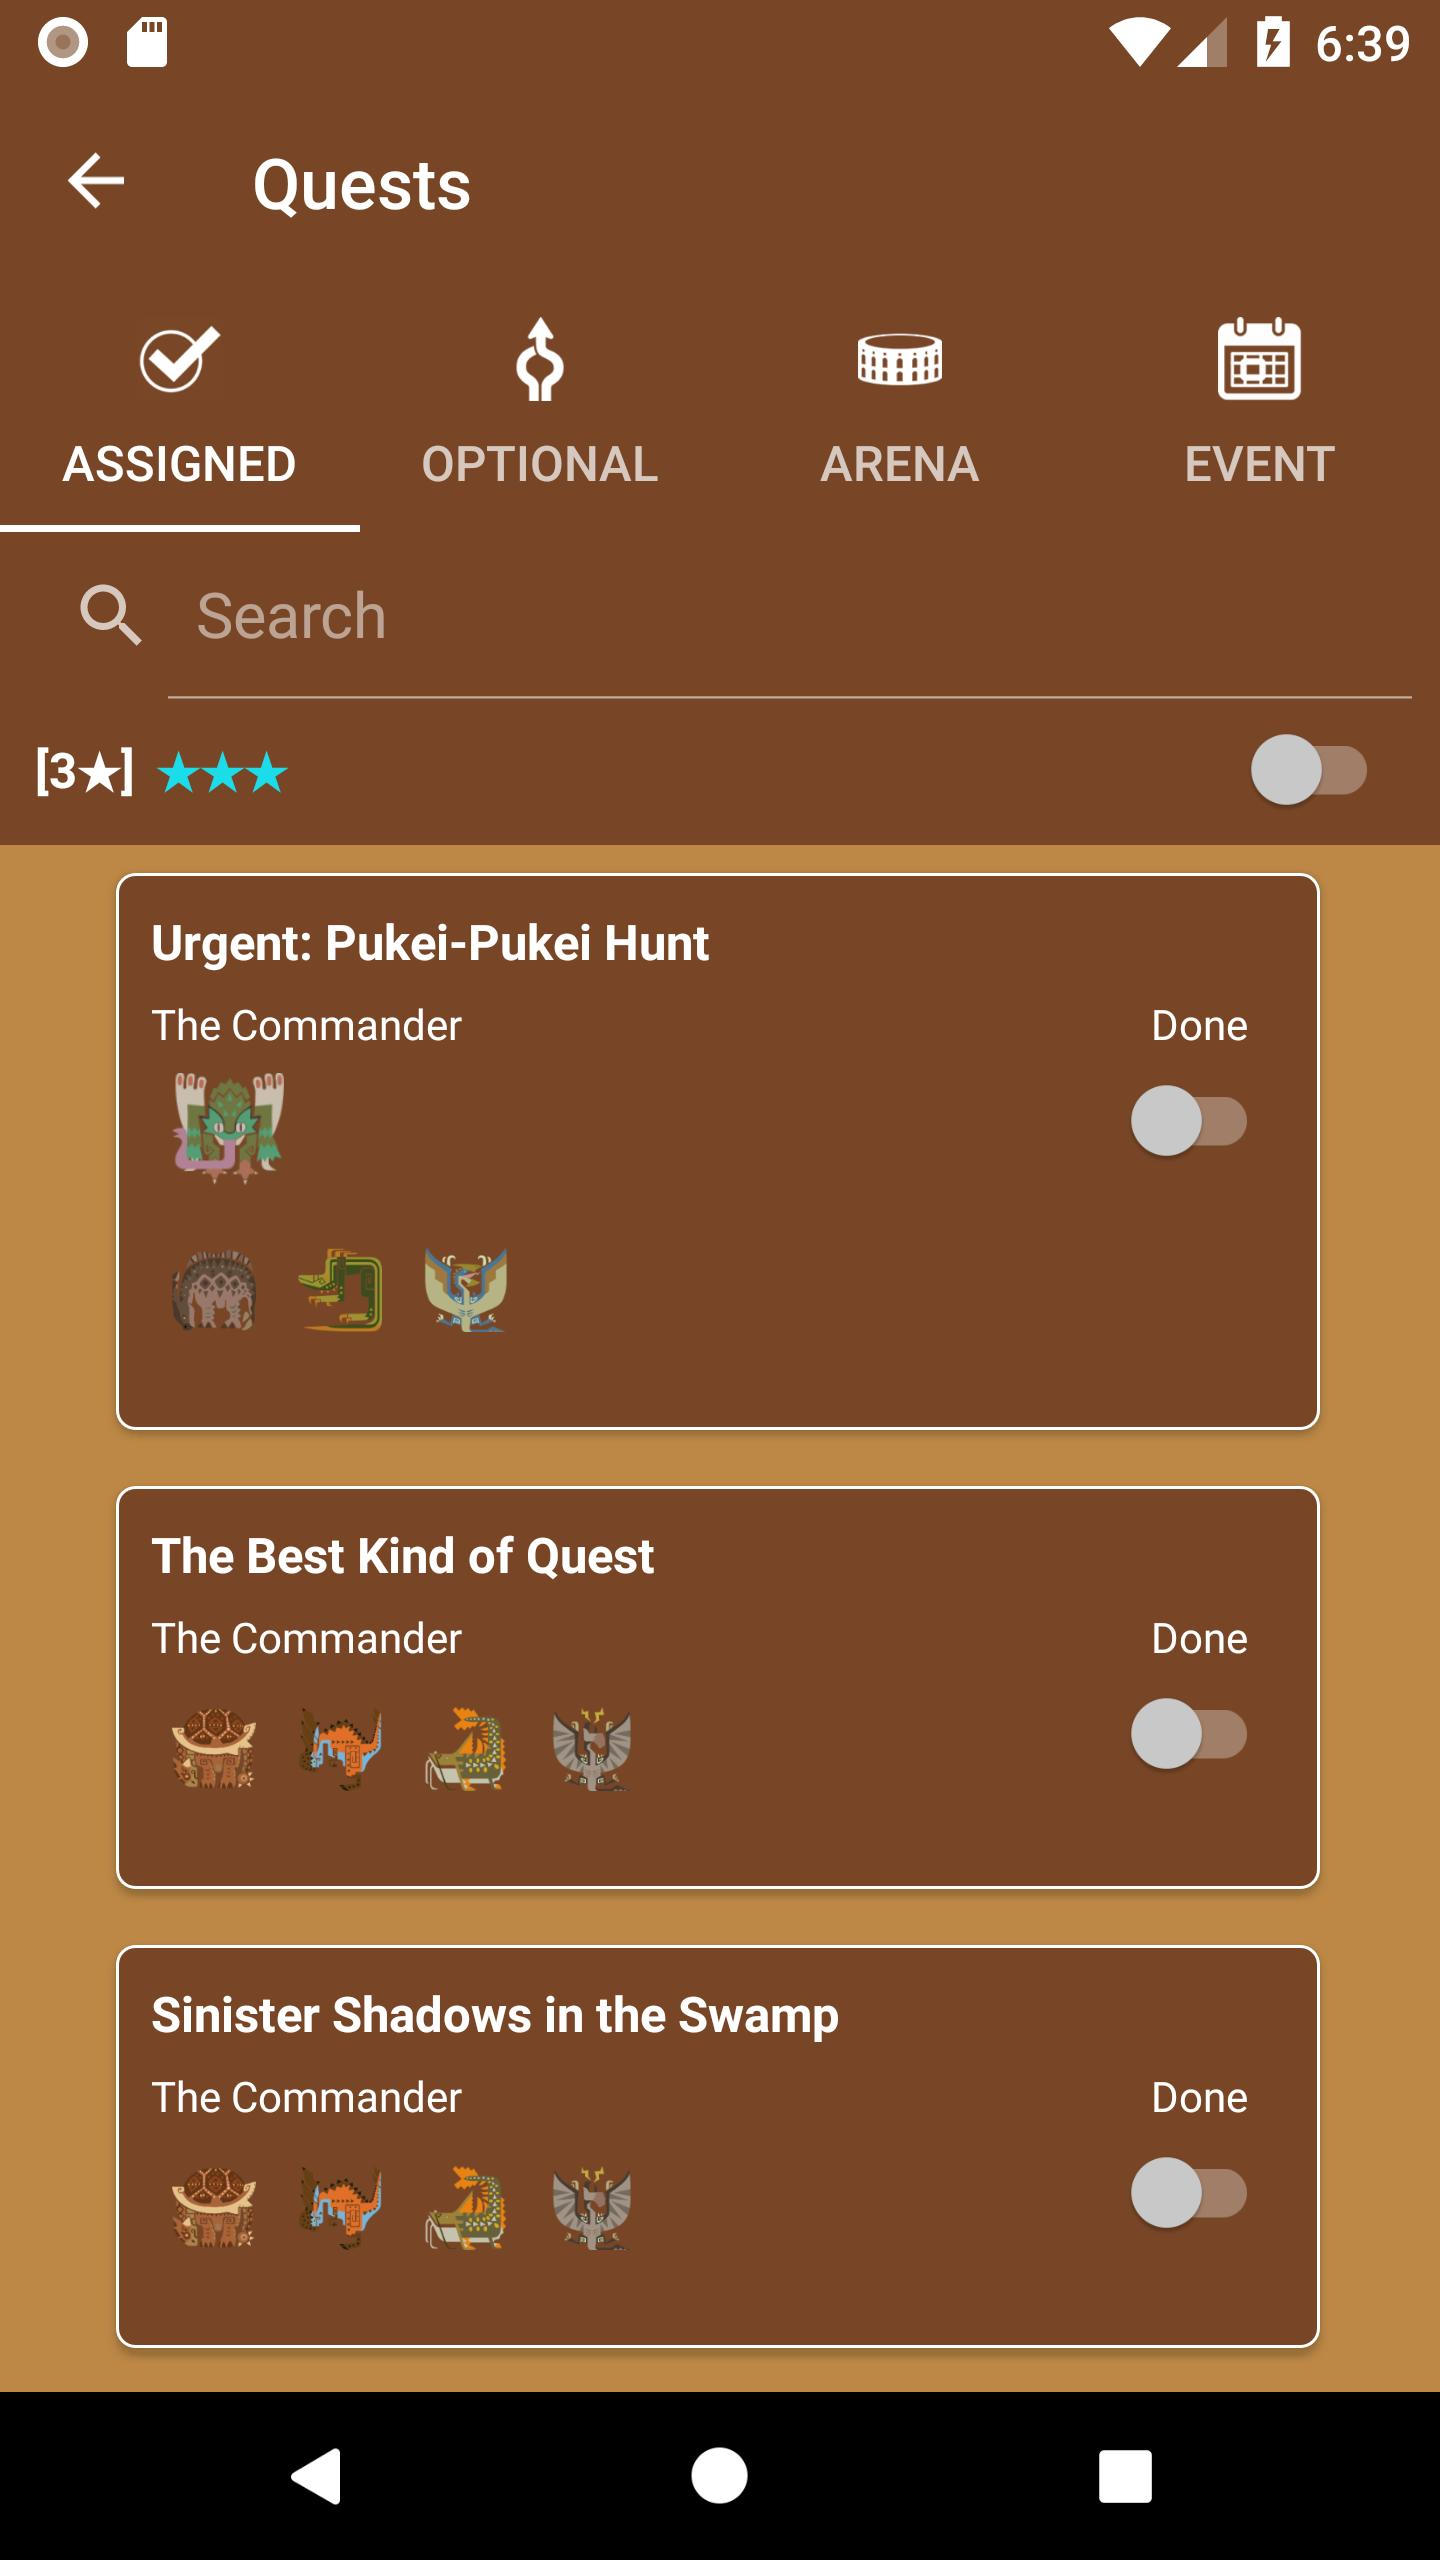 MHW Companion Guide for Android - APK Download